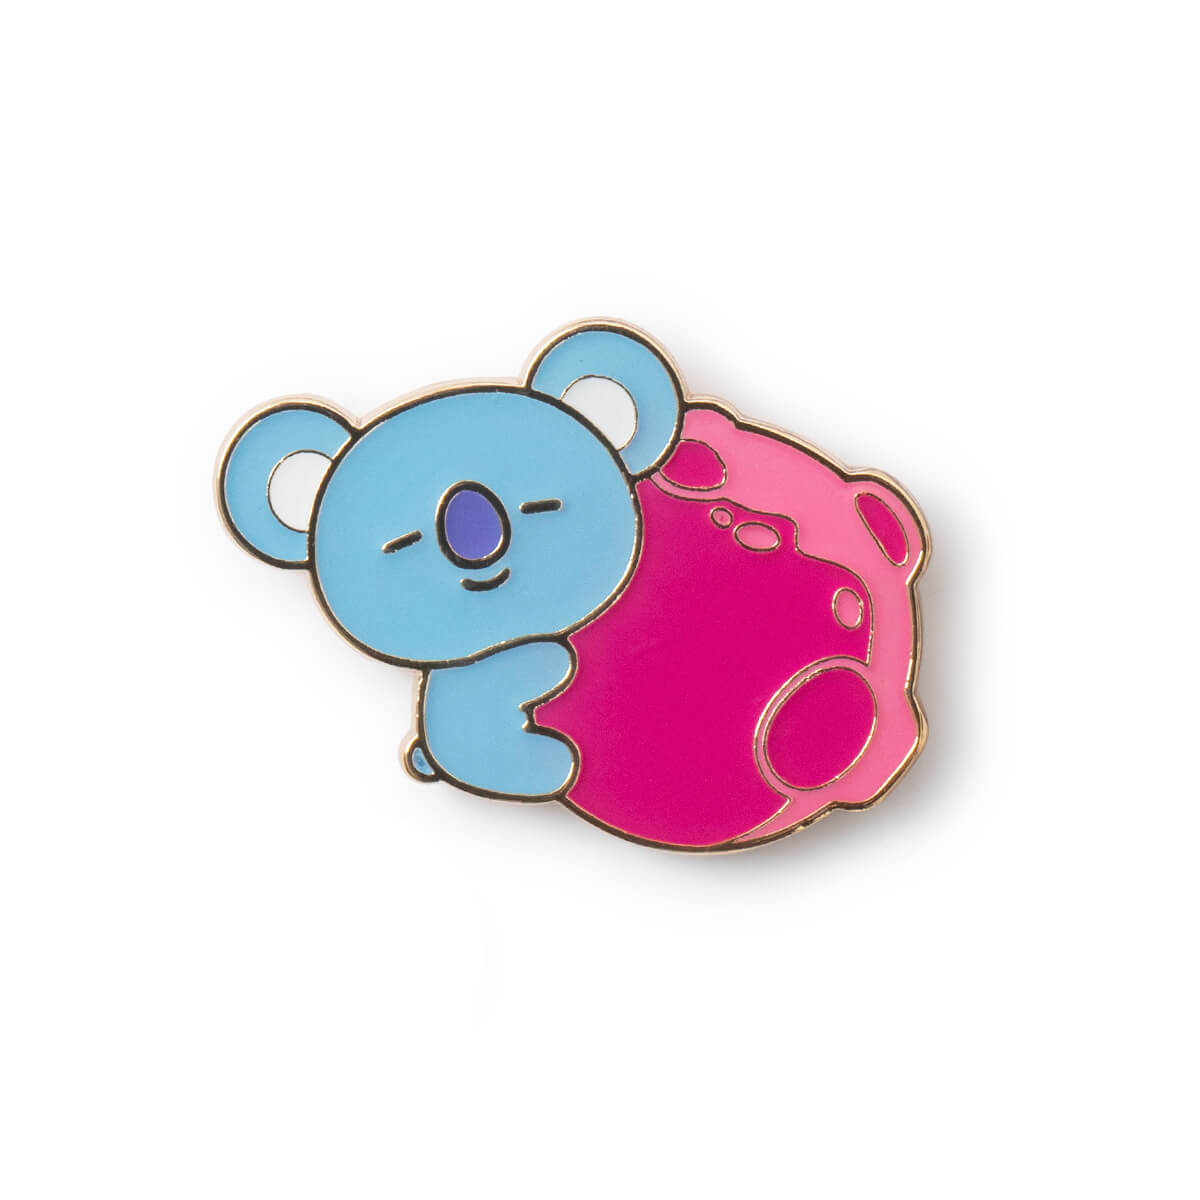 BT21 KOYA SPACE WAPPEN Enamel Pin Set, 2 pcs